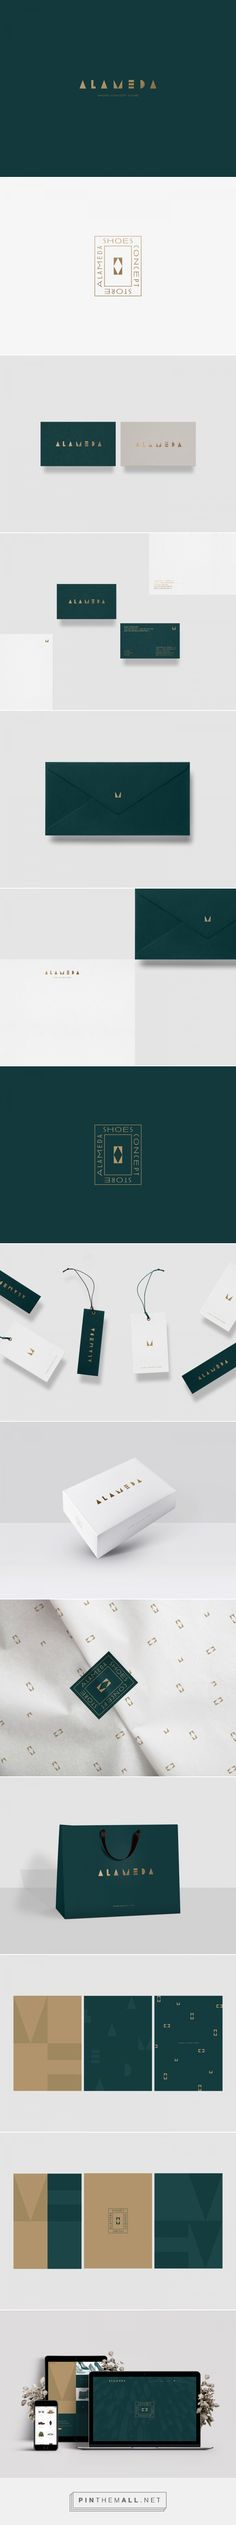 Alameda Shoes Concept Store Branding by Bullseye | Fivestar Branding Agency – Design and Branding Agency & Curated Inspiration Gallery #fashionbrand #branding #brand #design #designinspiration #typography